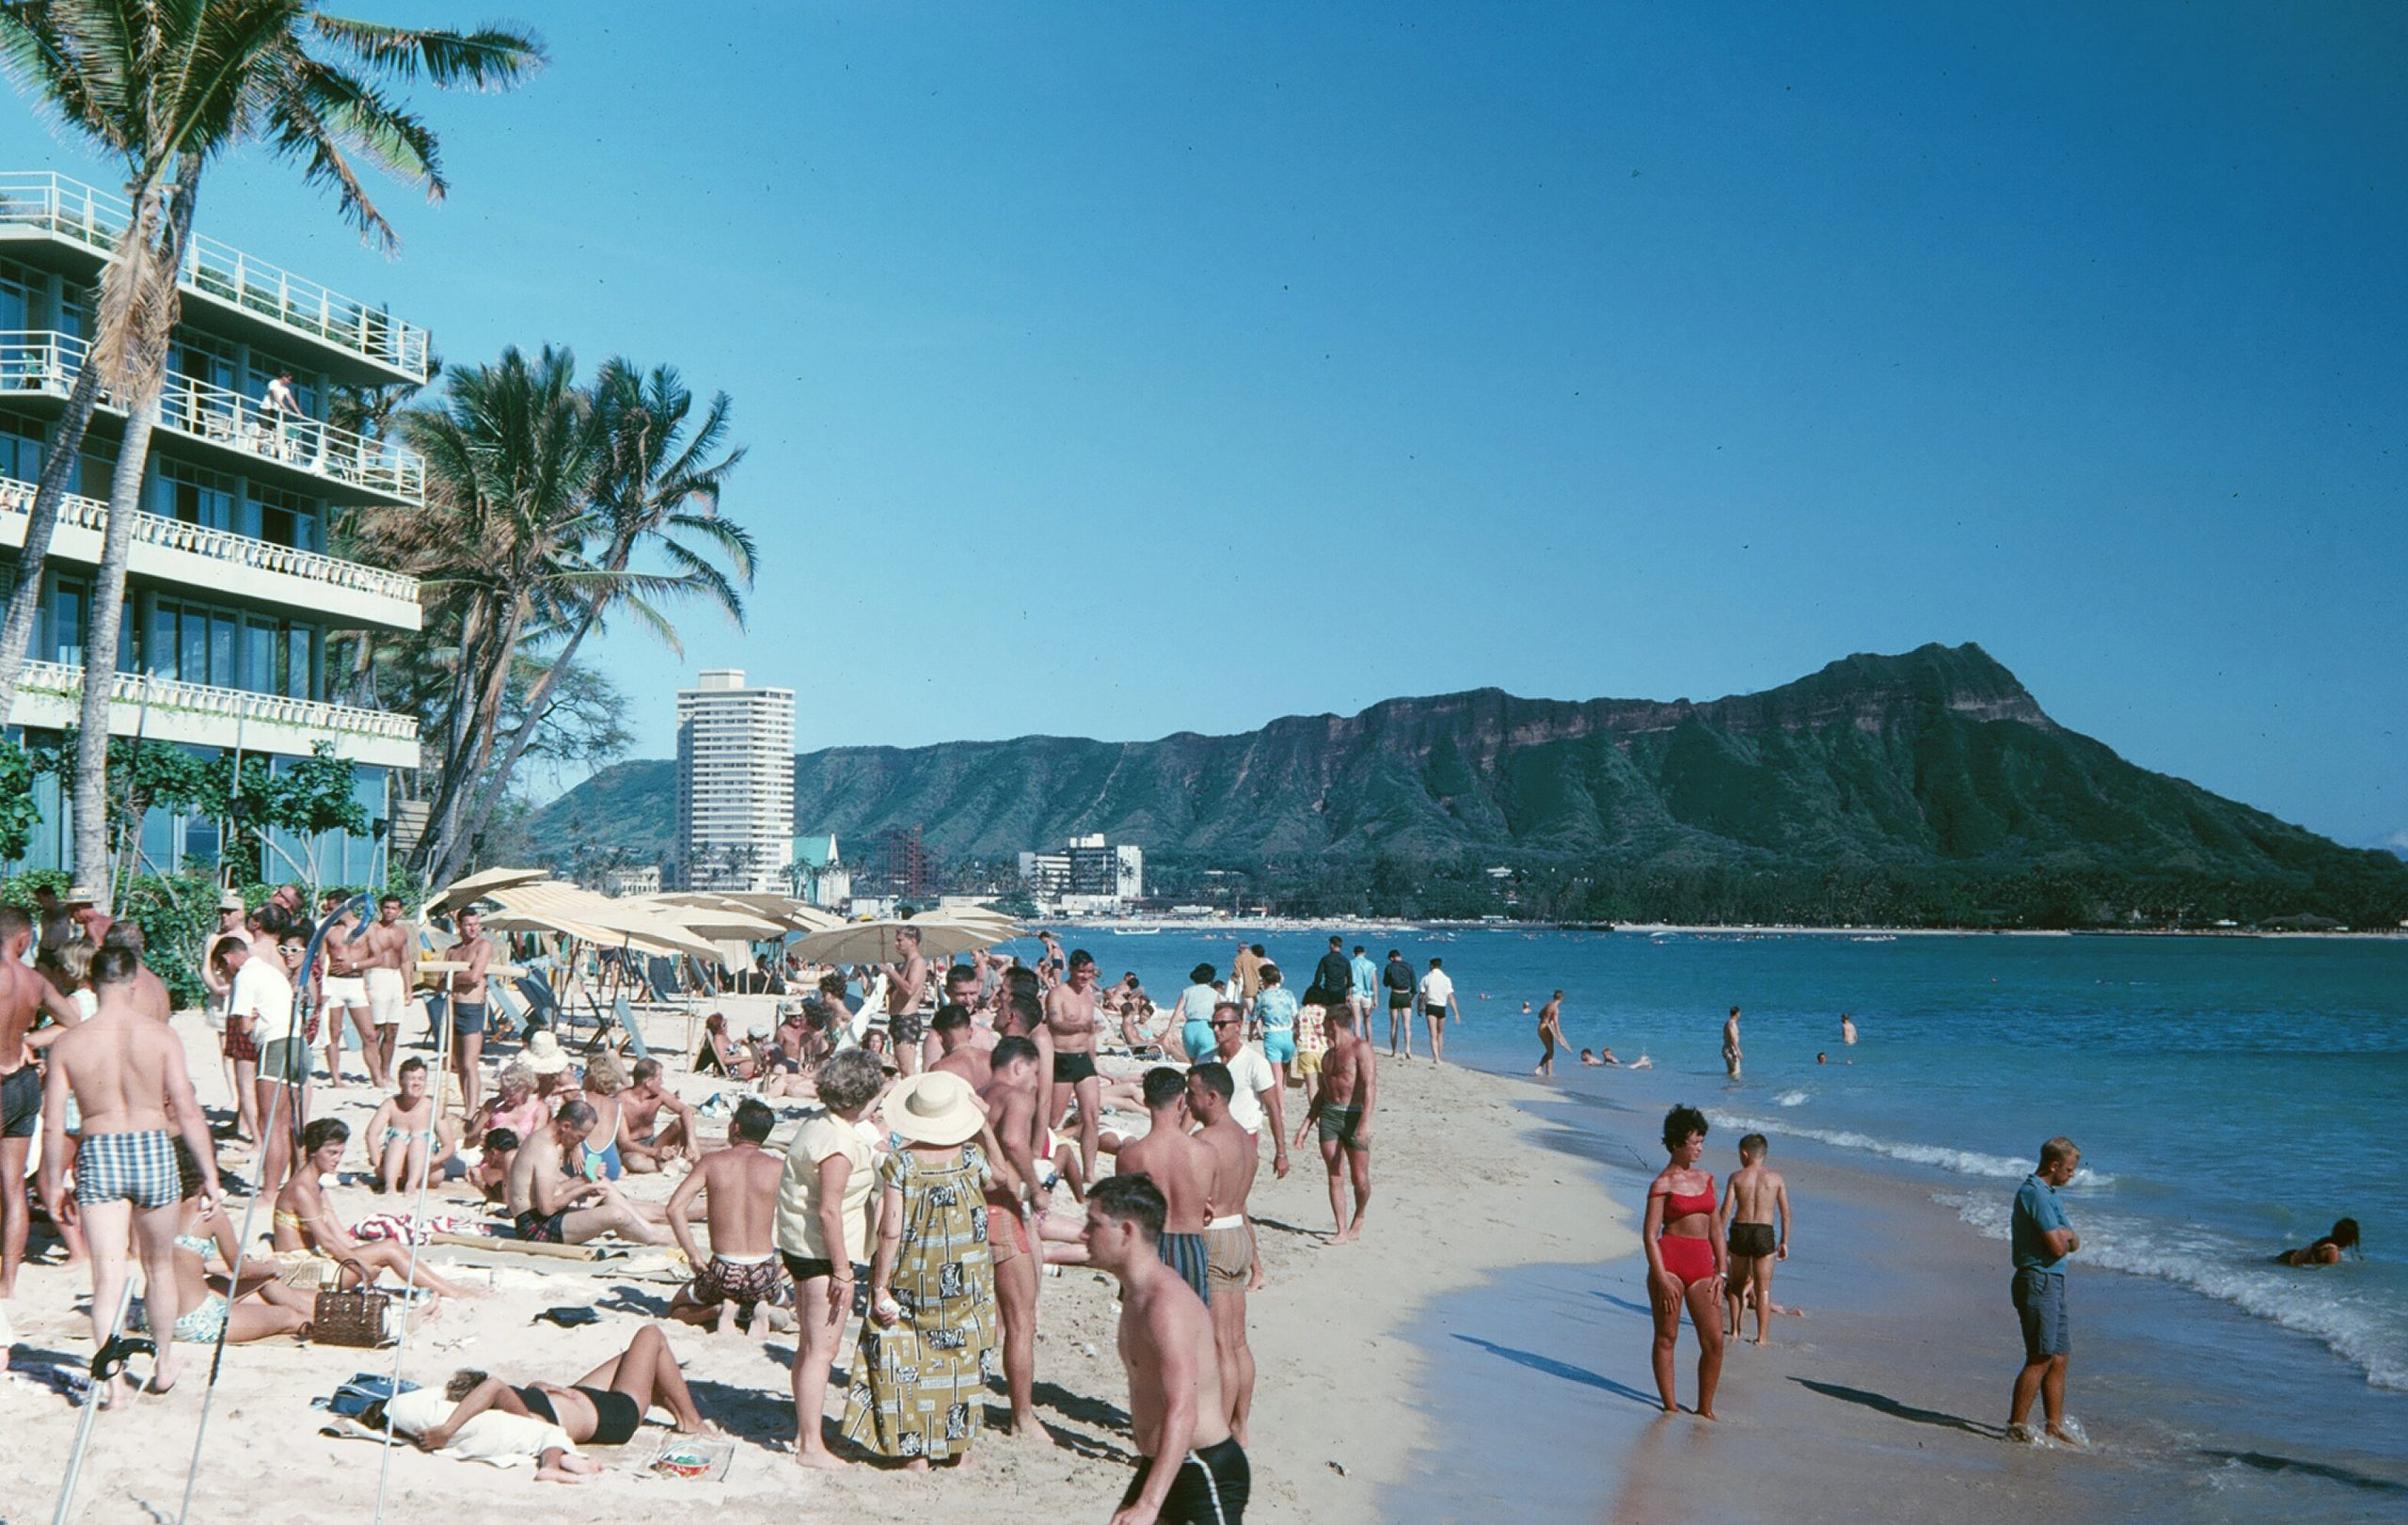 people on beach near seaside resort viewing mountain during daytime